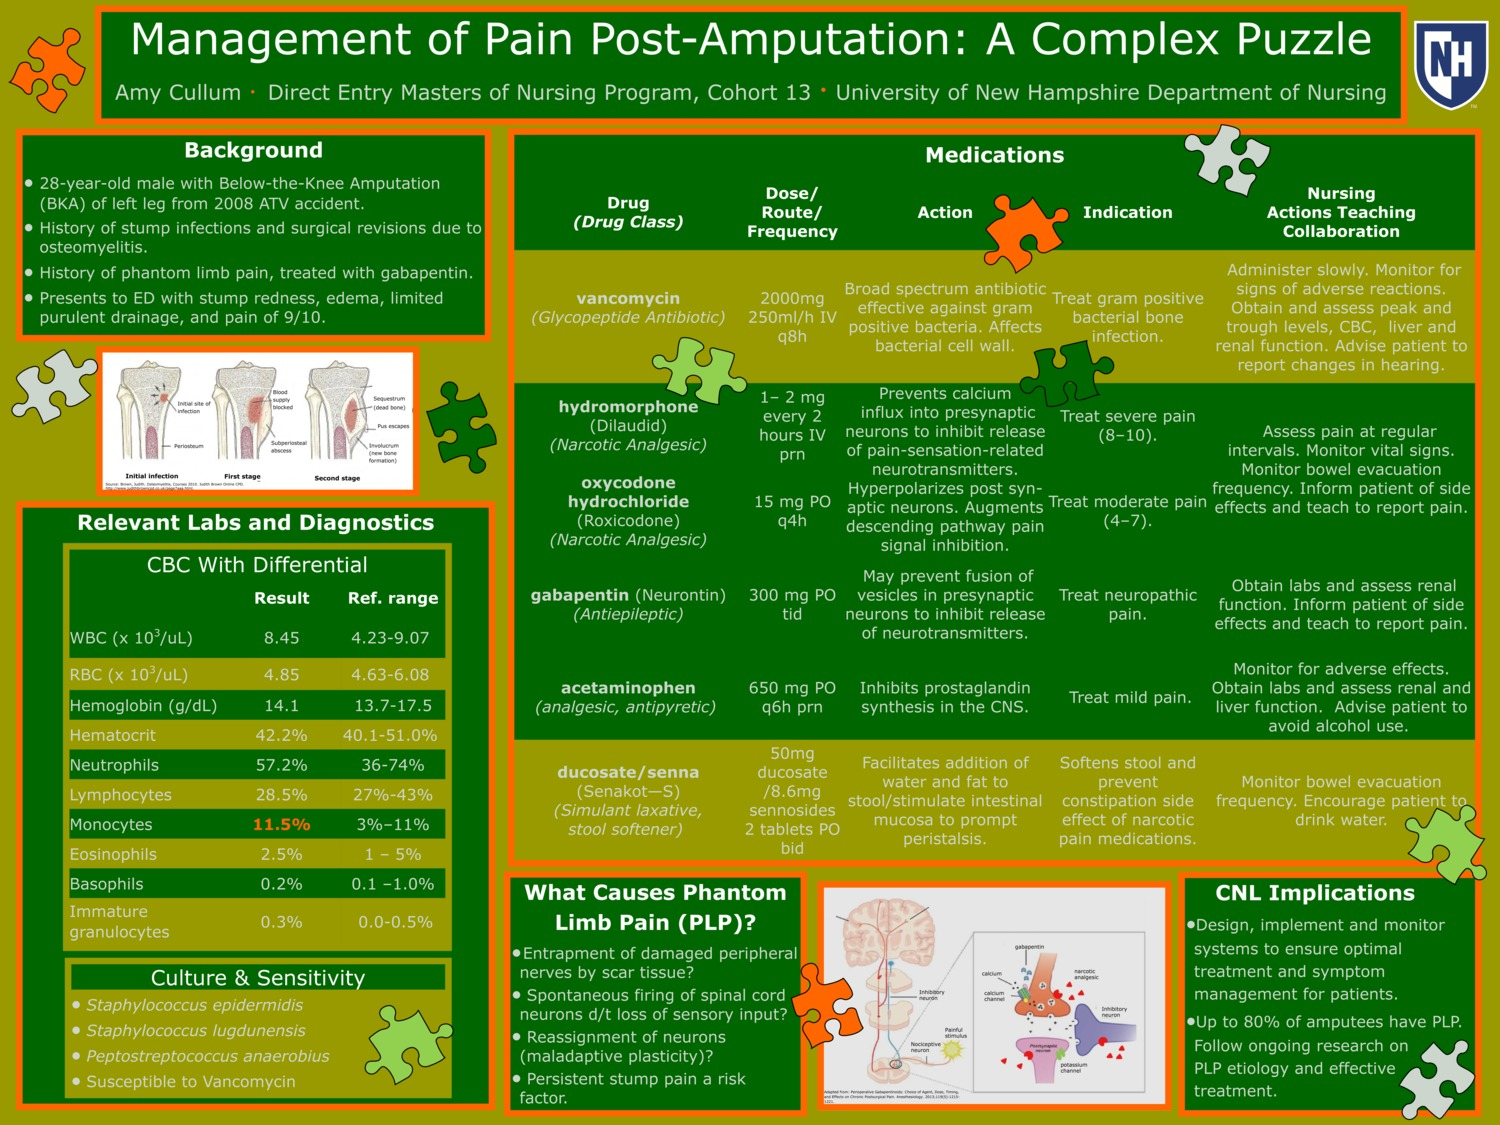 Management Of Pain Post-Amputation: A Complex Puzzle by acullum